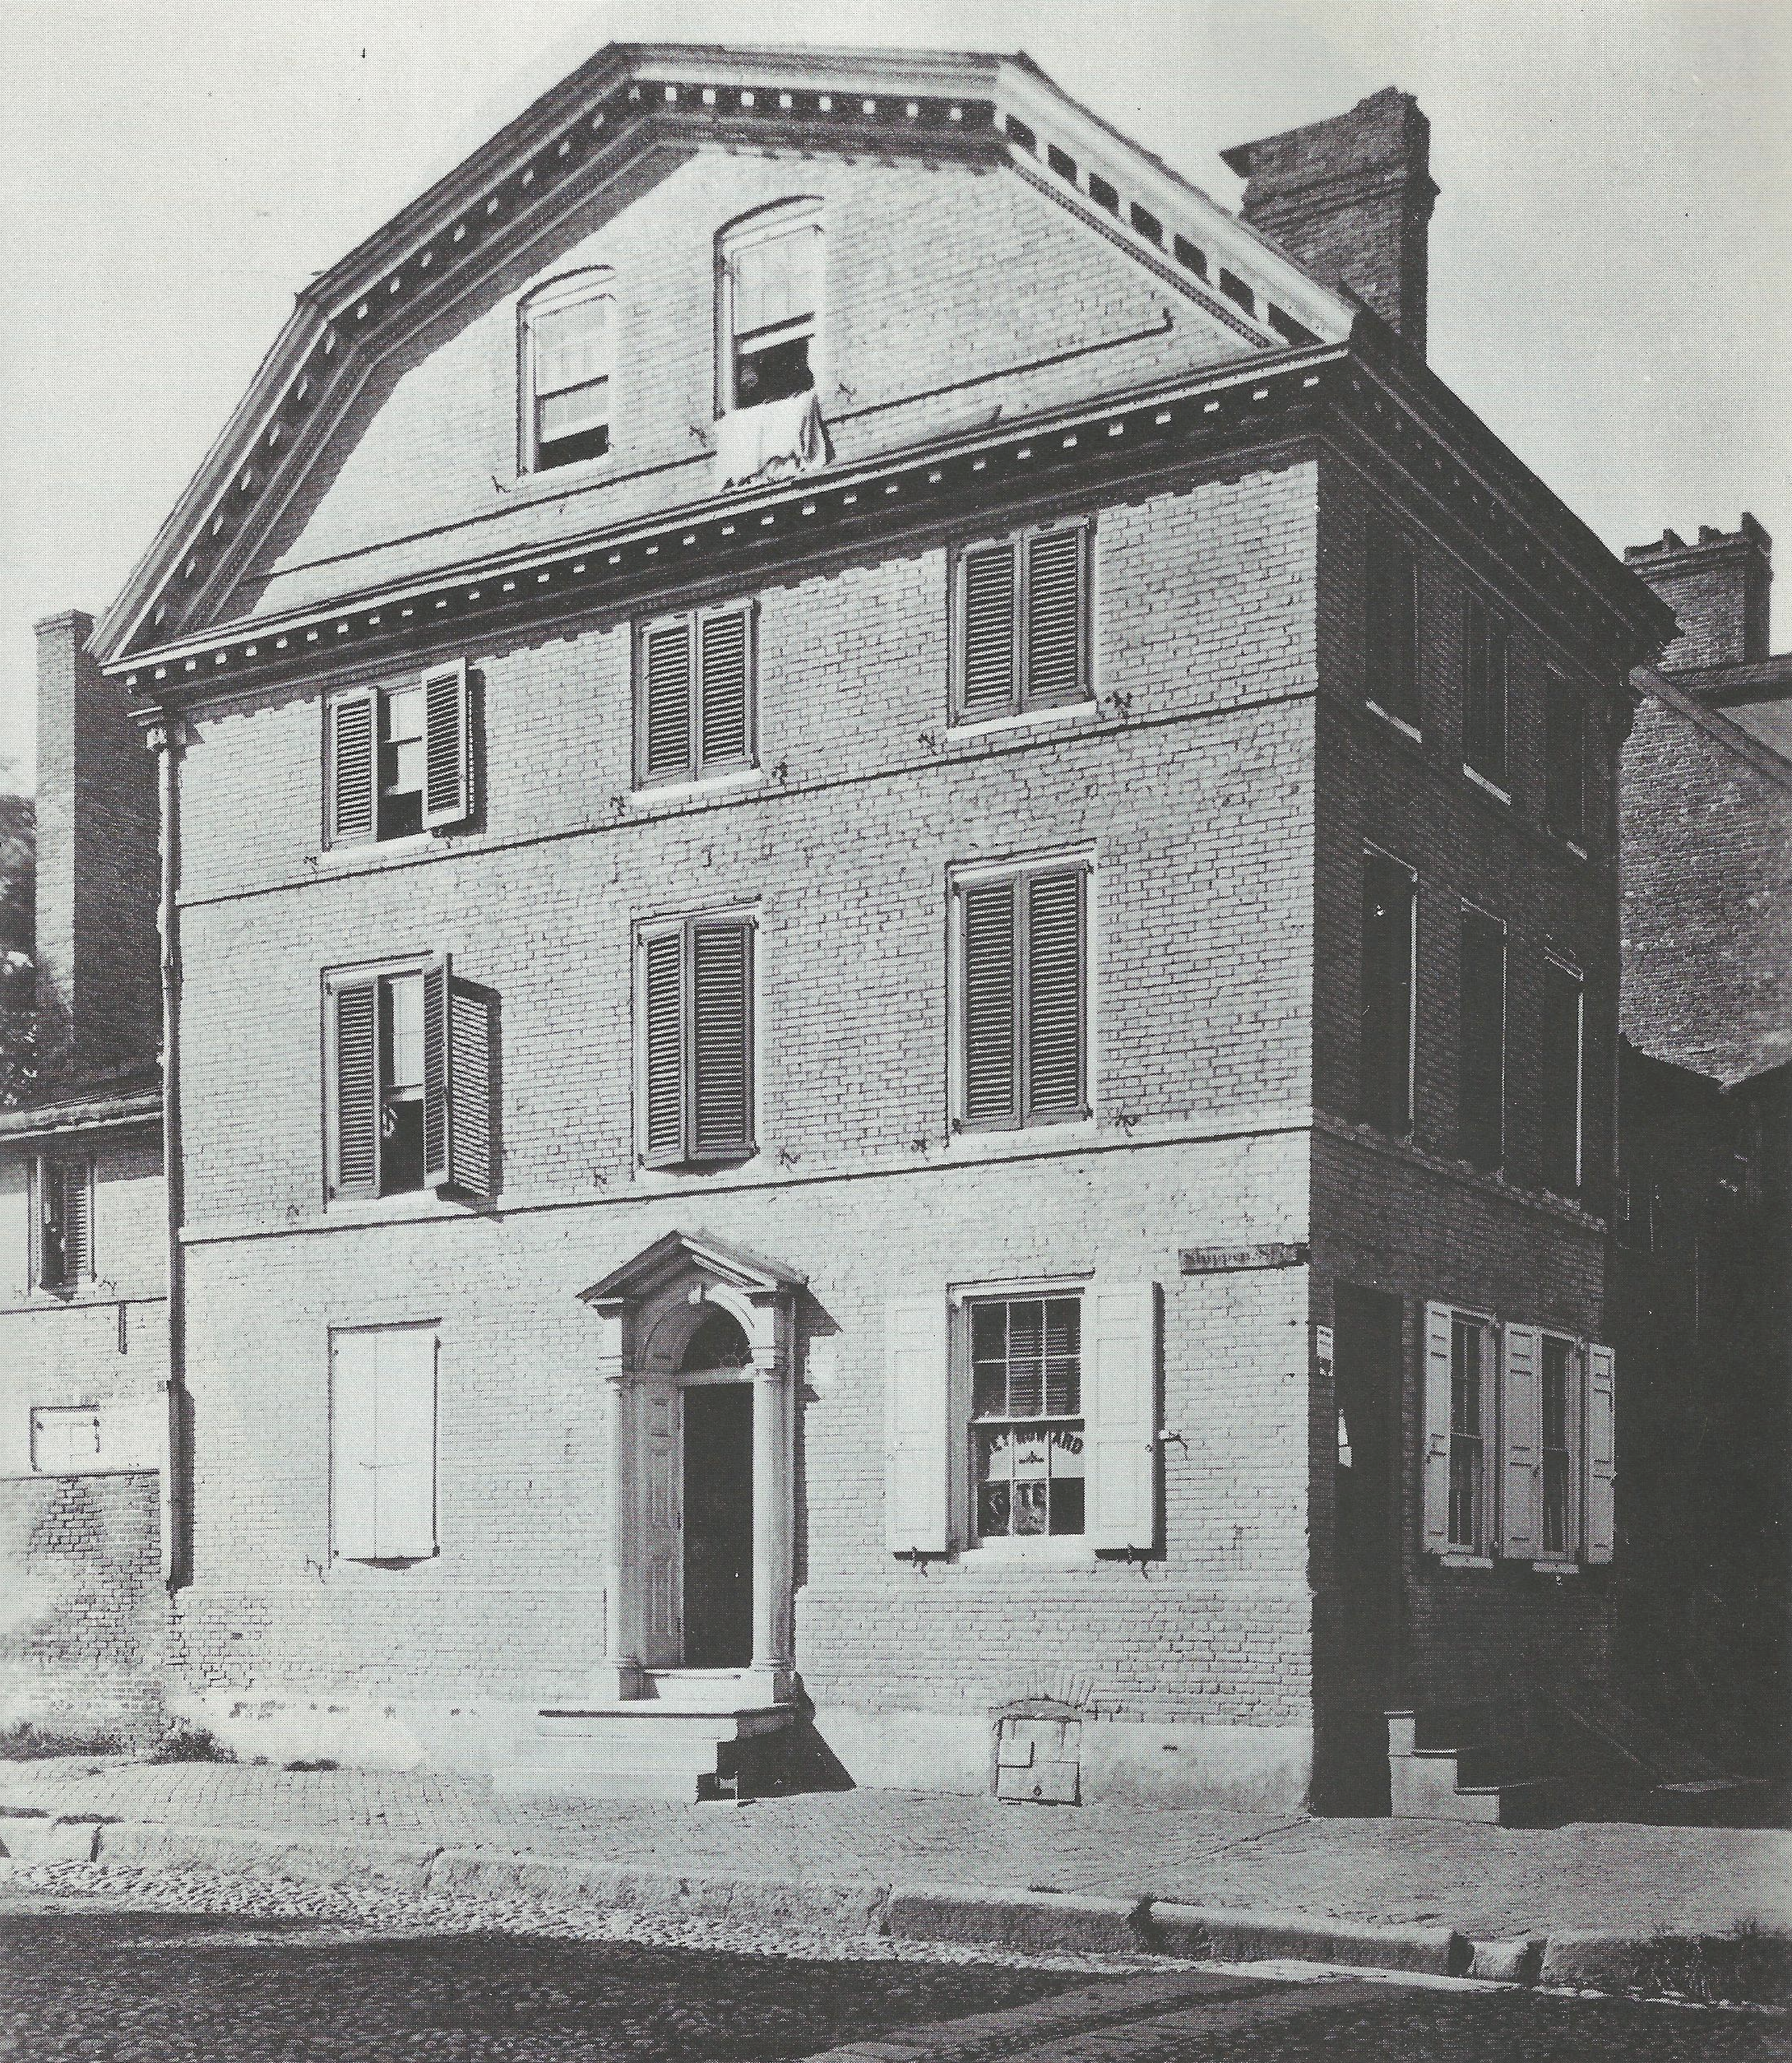 Photo by John Moran from the collection of the Free Library of Philadelphia (c. 1868).